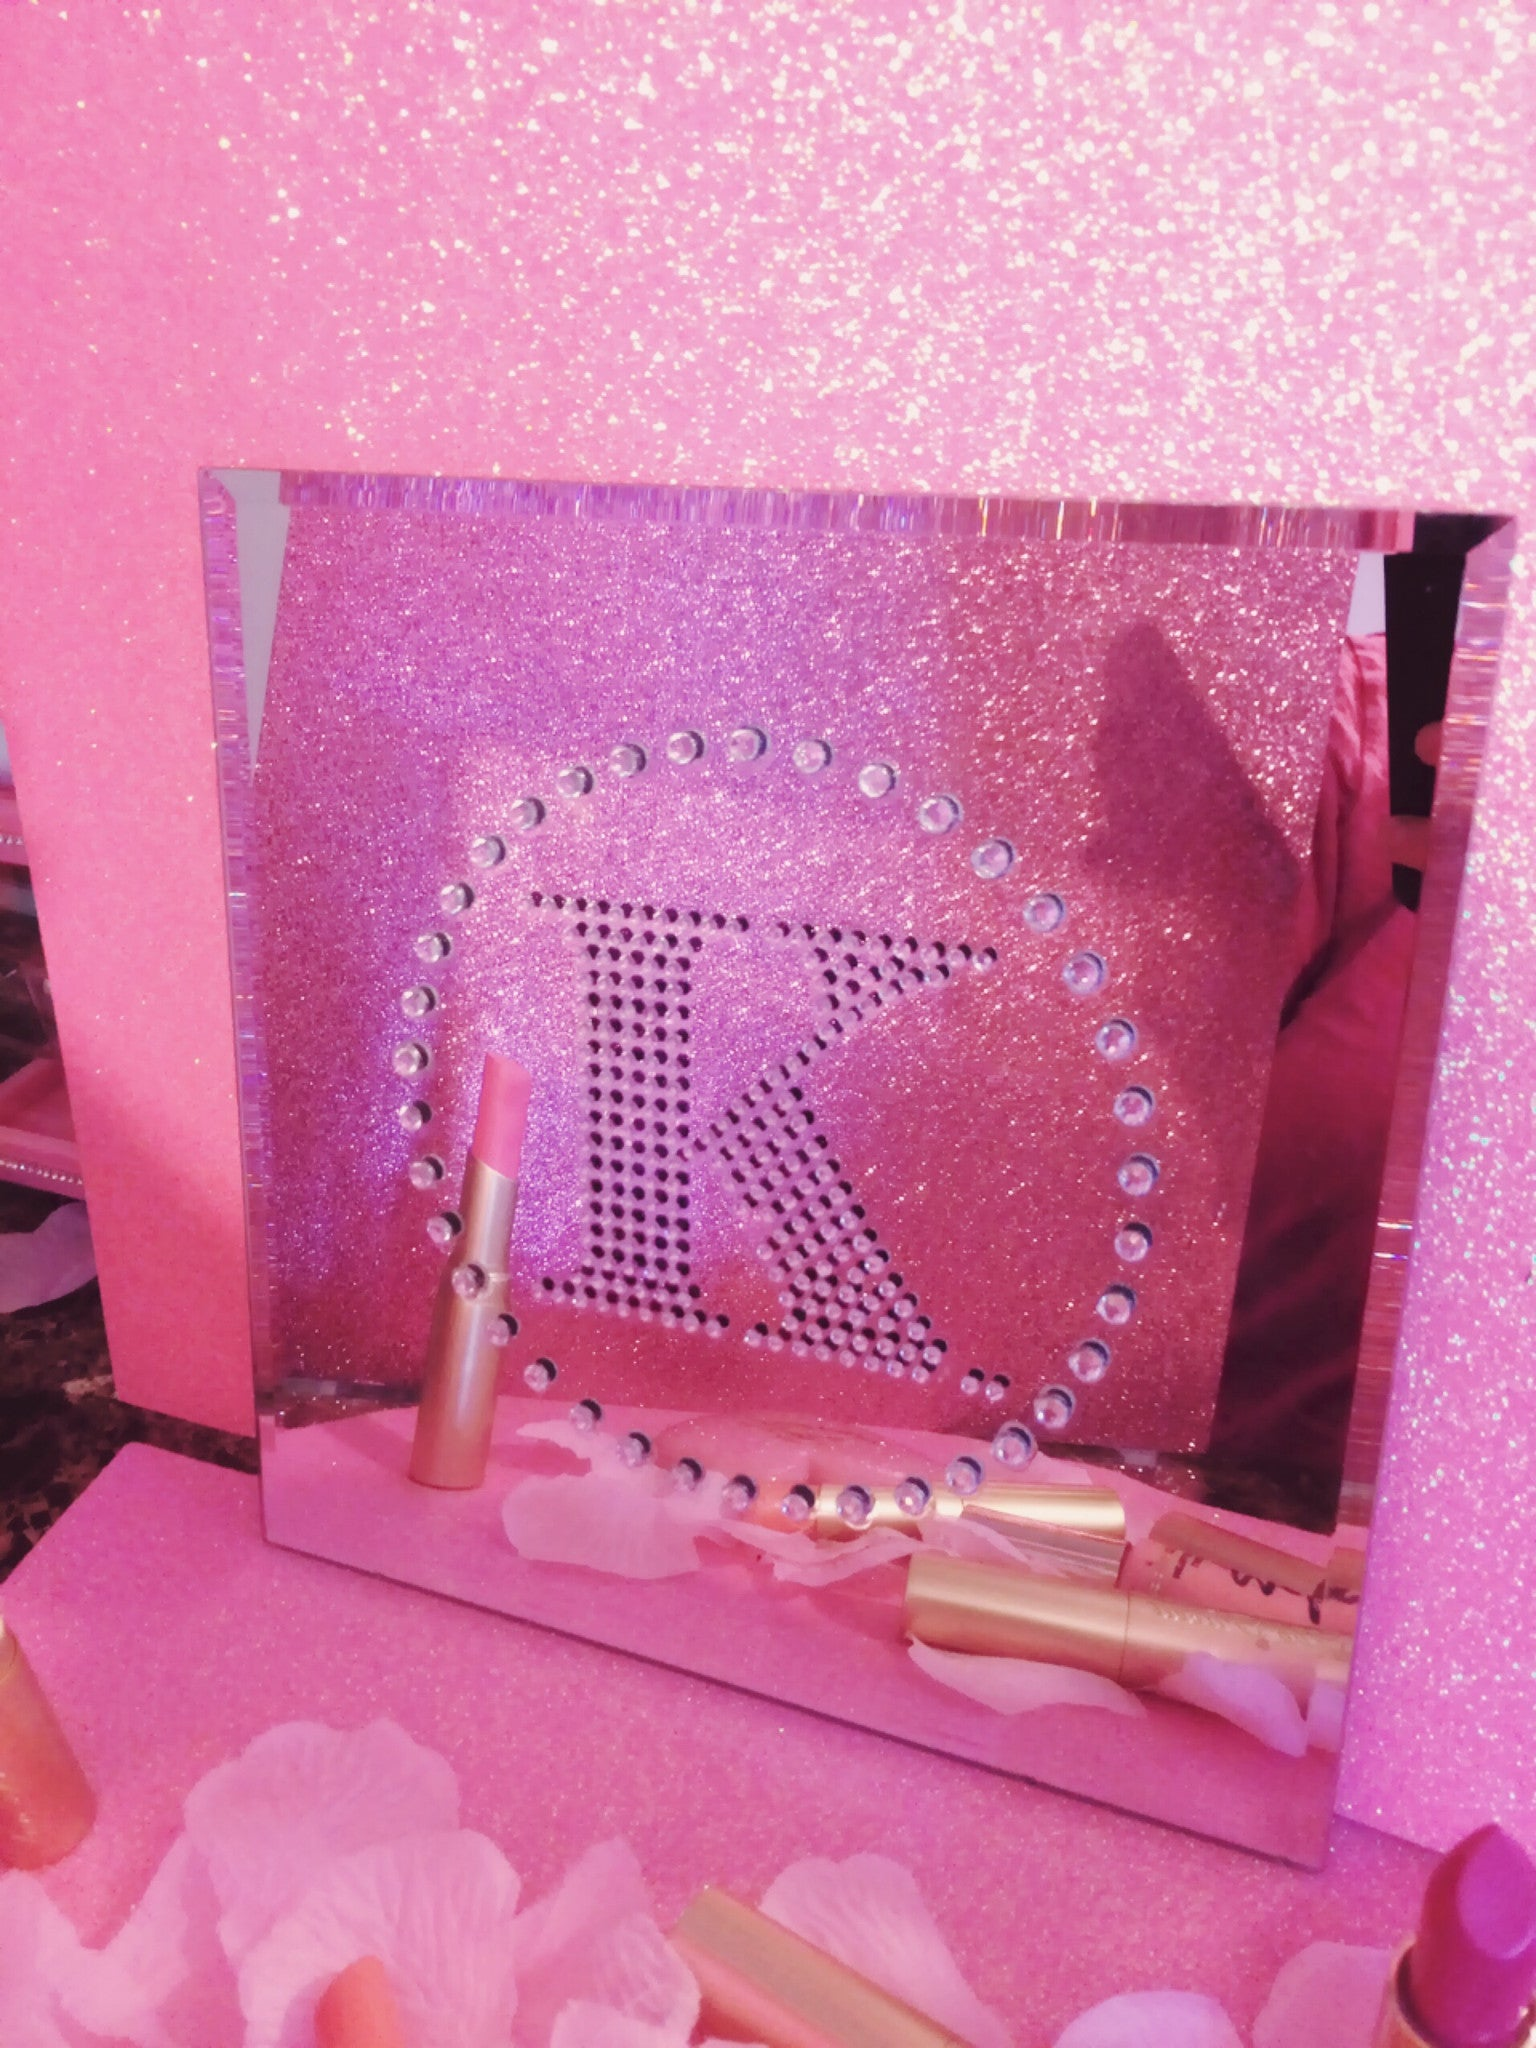 Letter K with rhinestones on a decor mirror